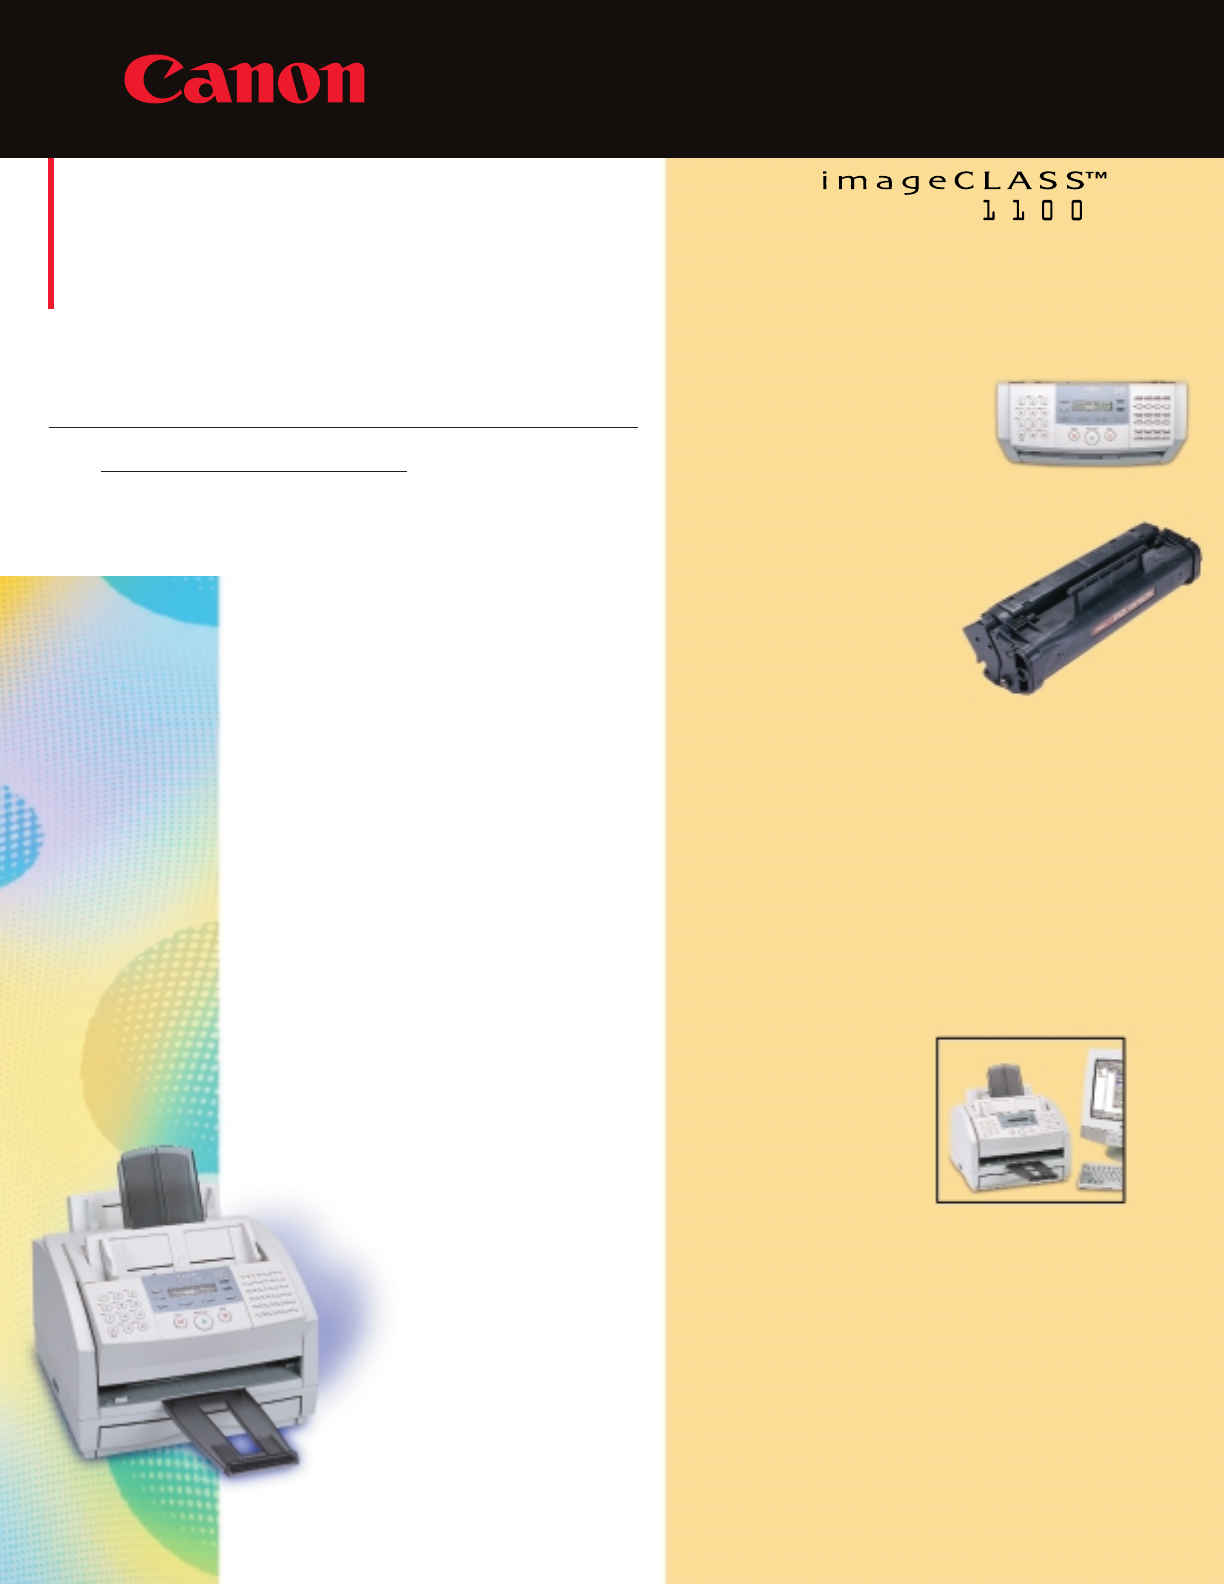 Canon printer user guide for windows users mp640 windows driver and bundled software array canon all in one printer 1100 user guide manualsonline com rh office manualsonline com fandeluxe Choice Image